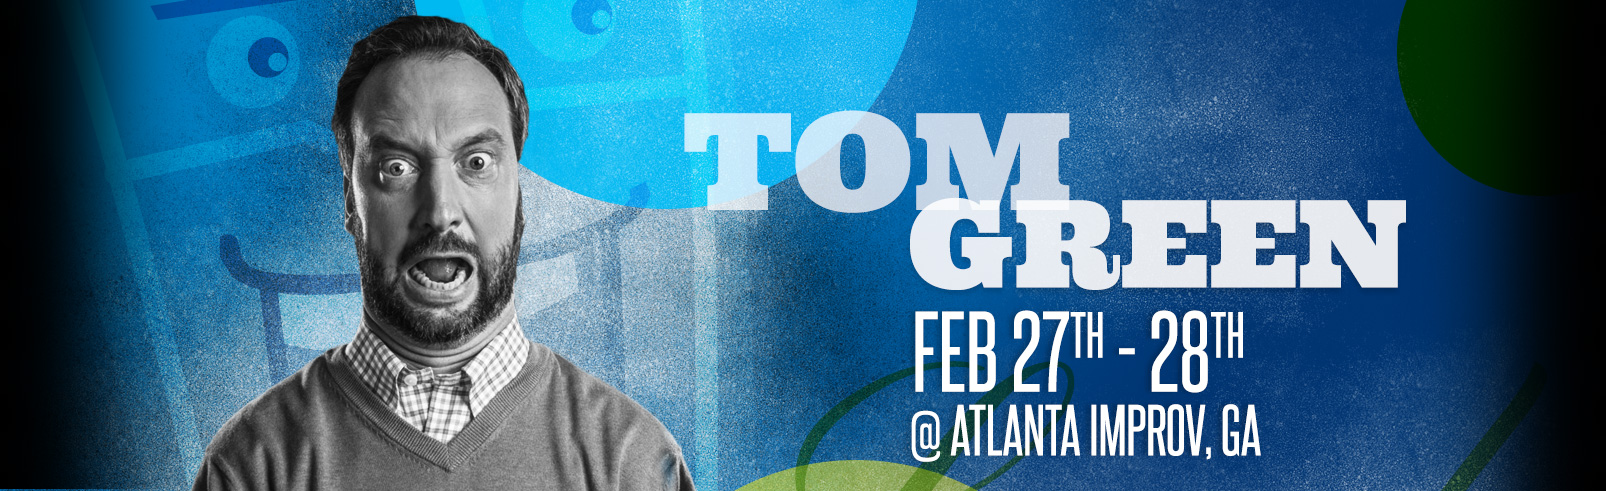 Tom Green @ Atlanta Improv